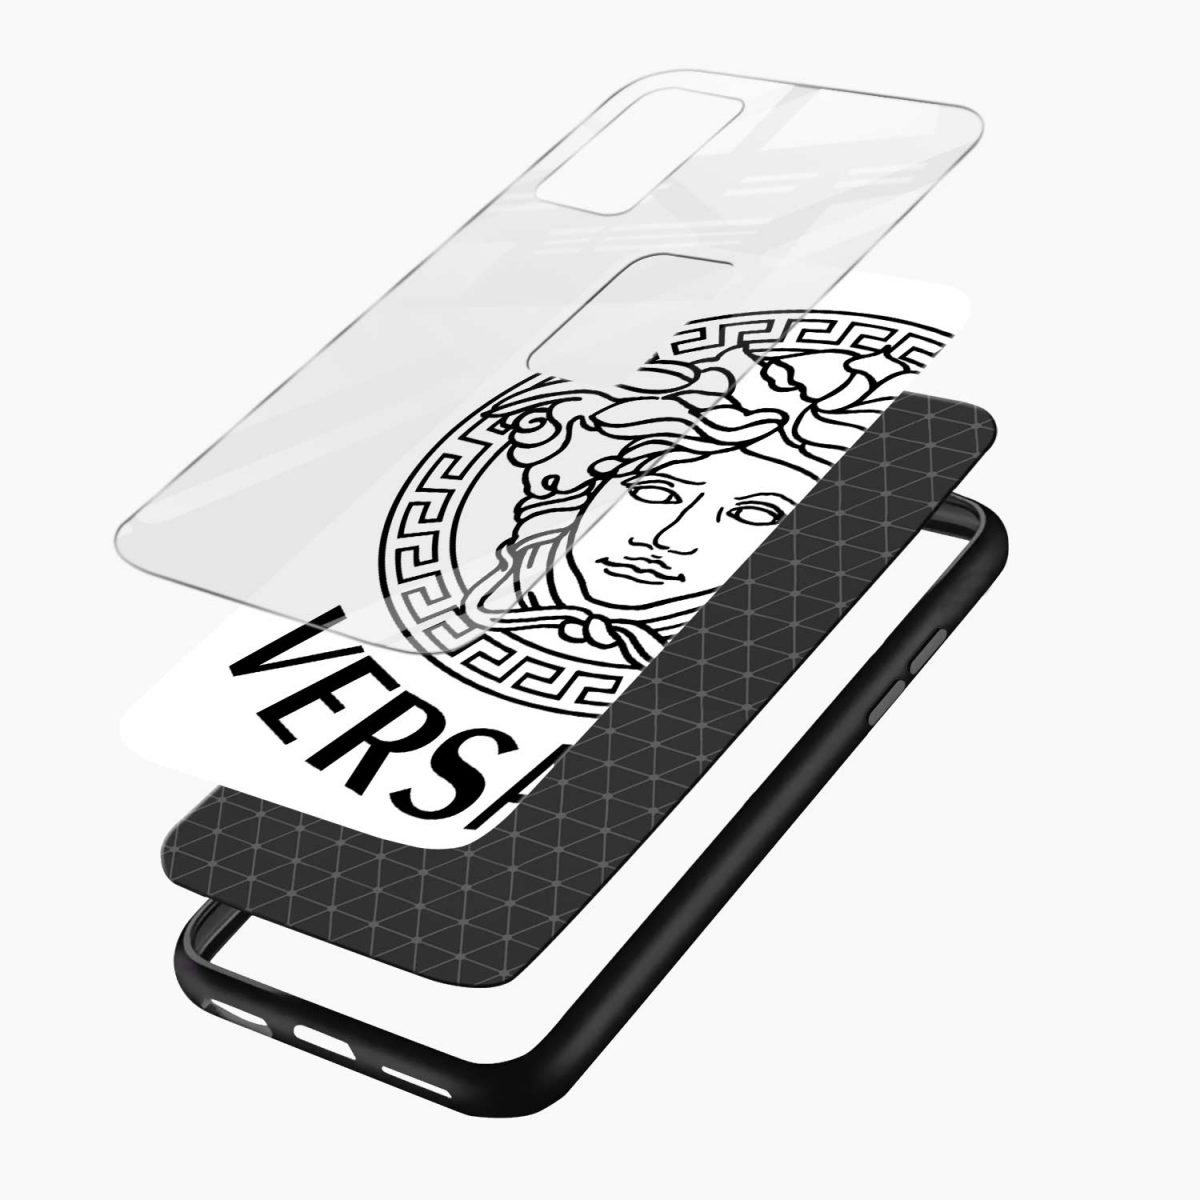 versace black white layers view oneplus 9 pro back cover